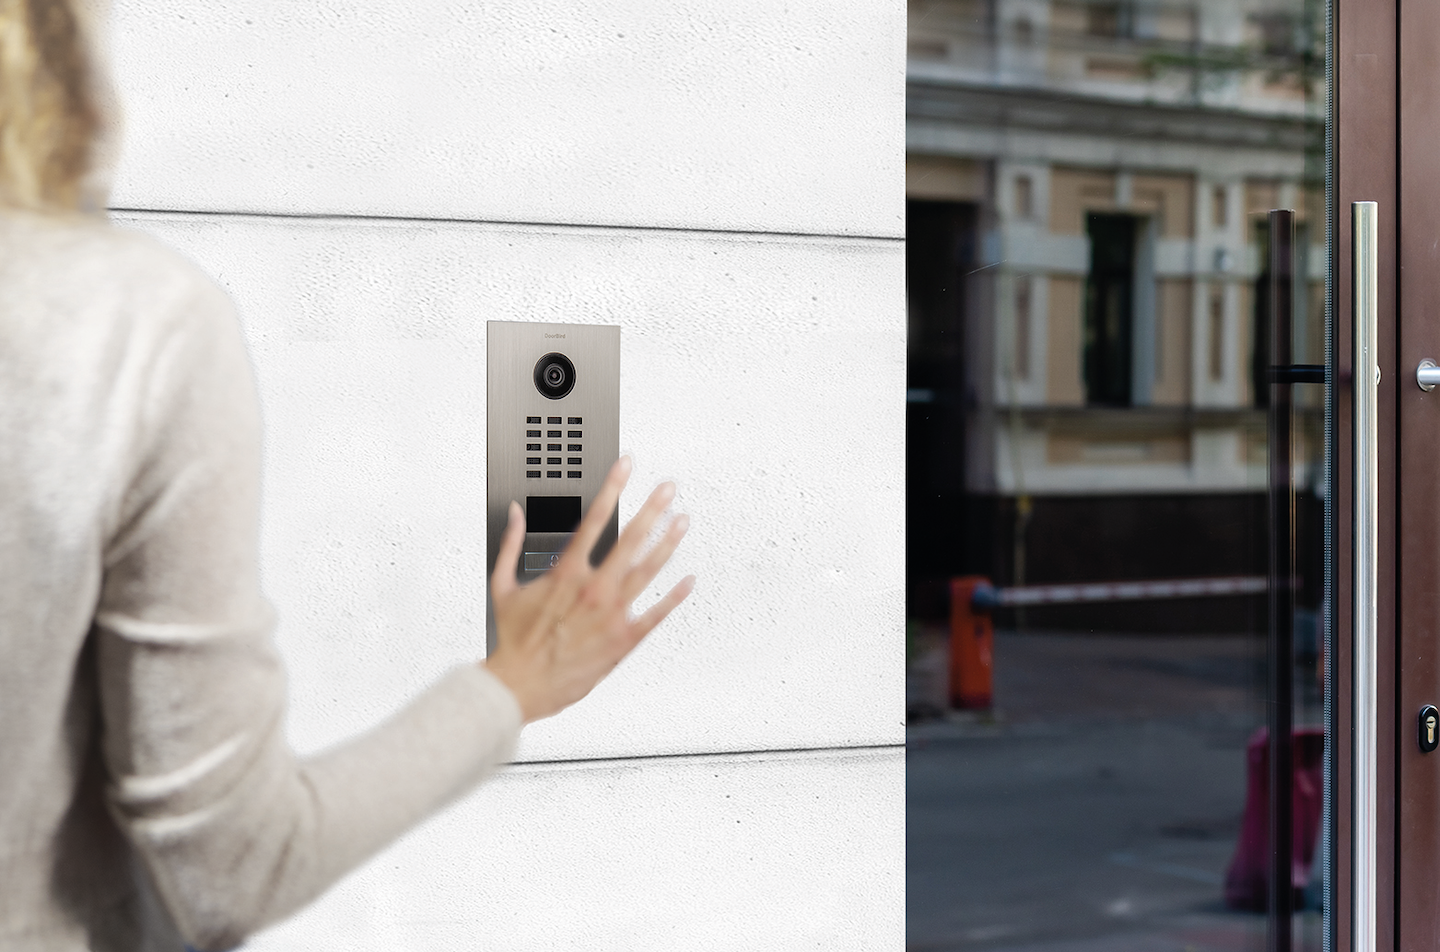 Doorbird has eliminated the pushbutton from this model of its video intercoms.